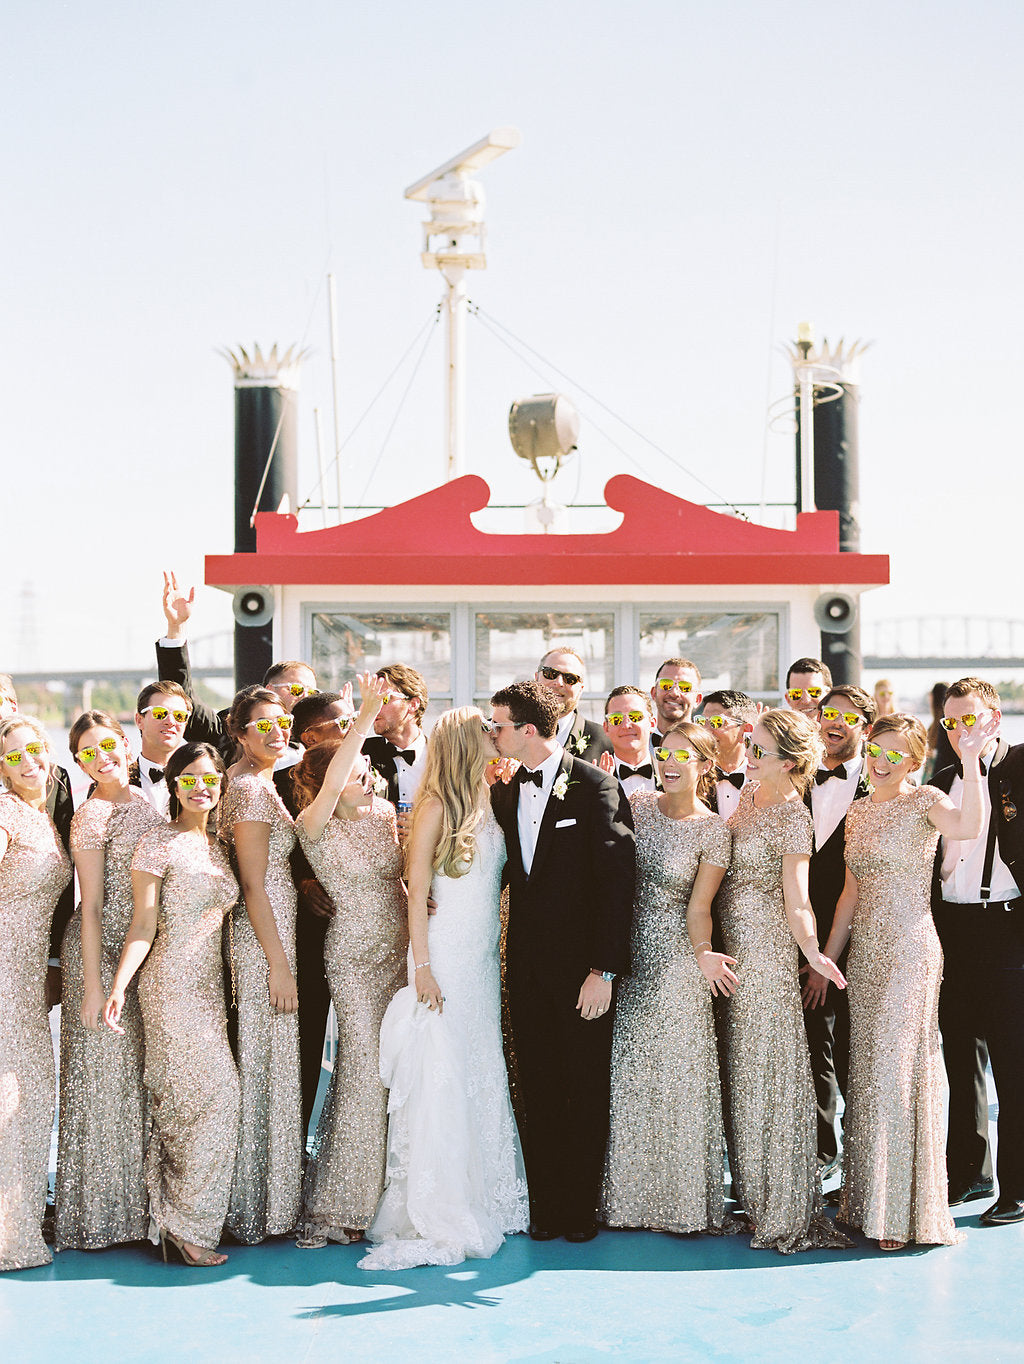 bella belle summer wedding inspirations wedding party cruise